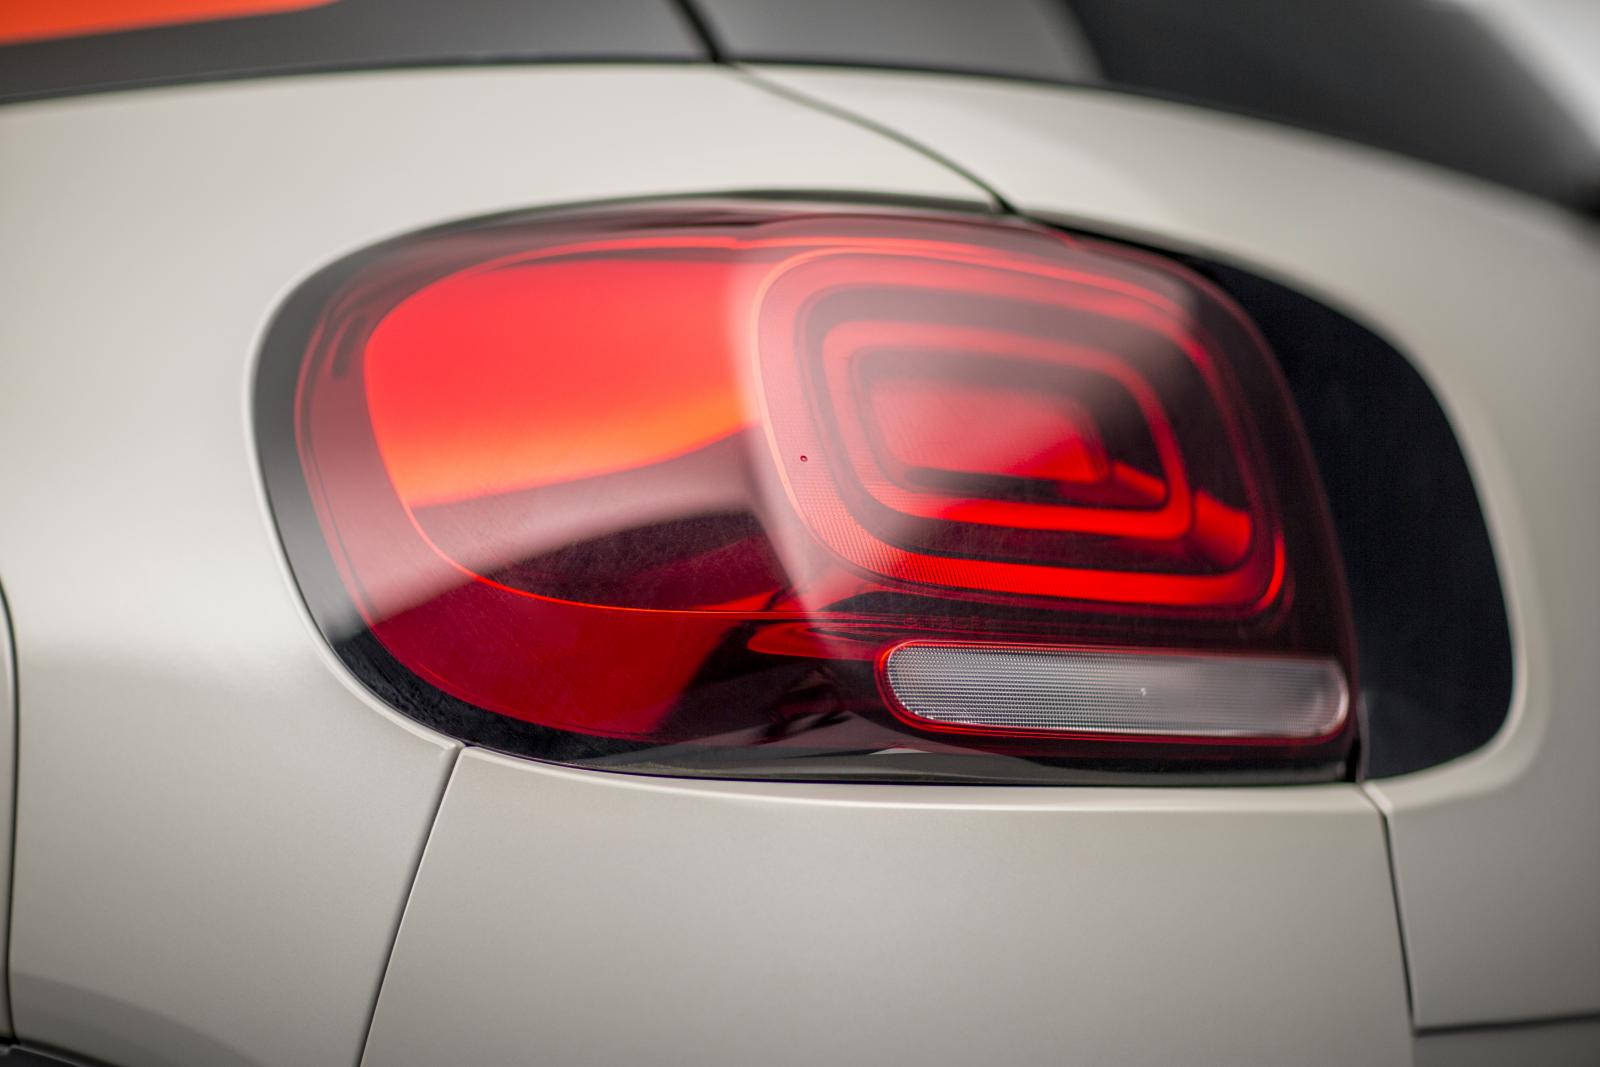 C3 Aircross Compact SUV - Rear Light